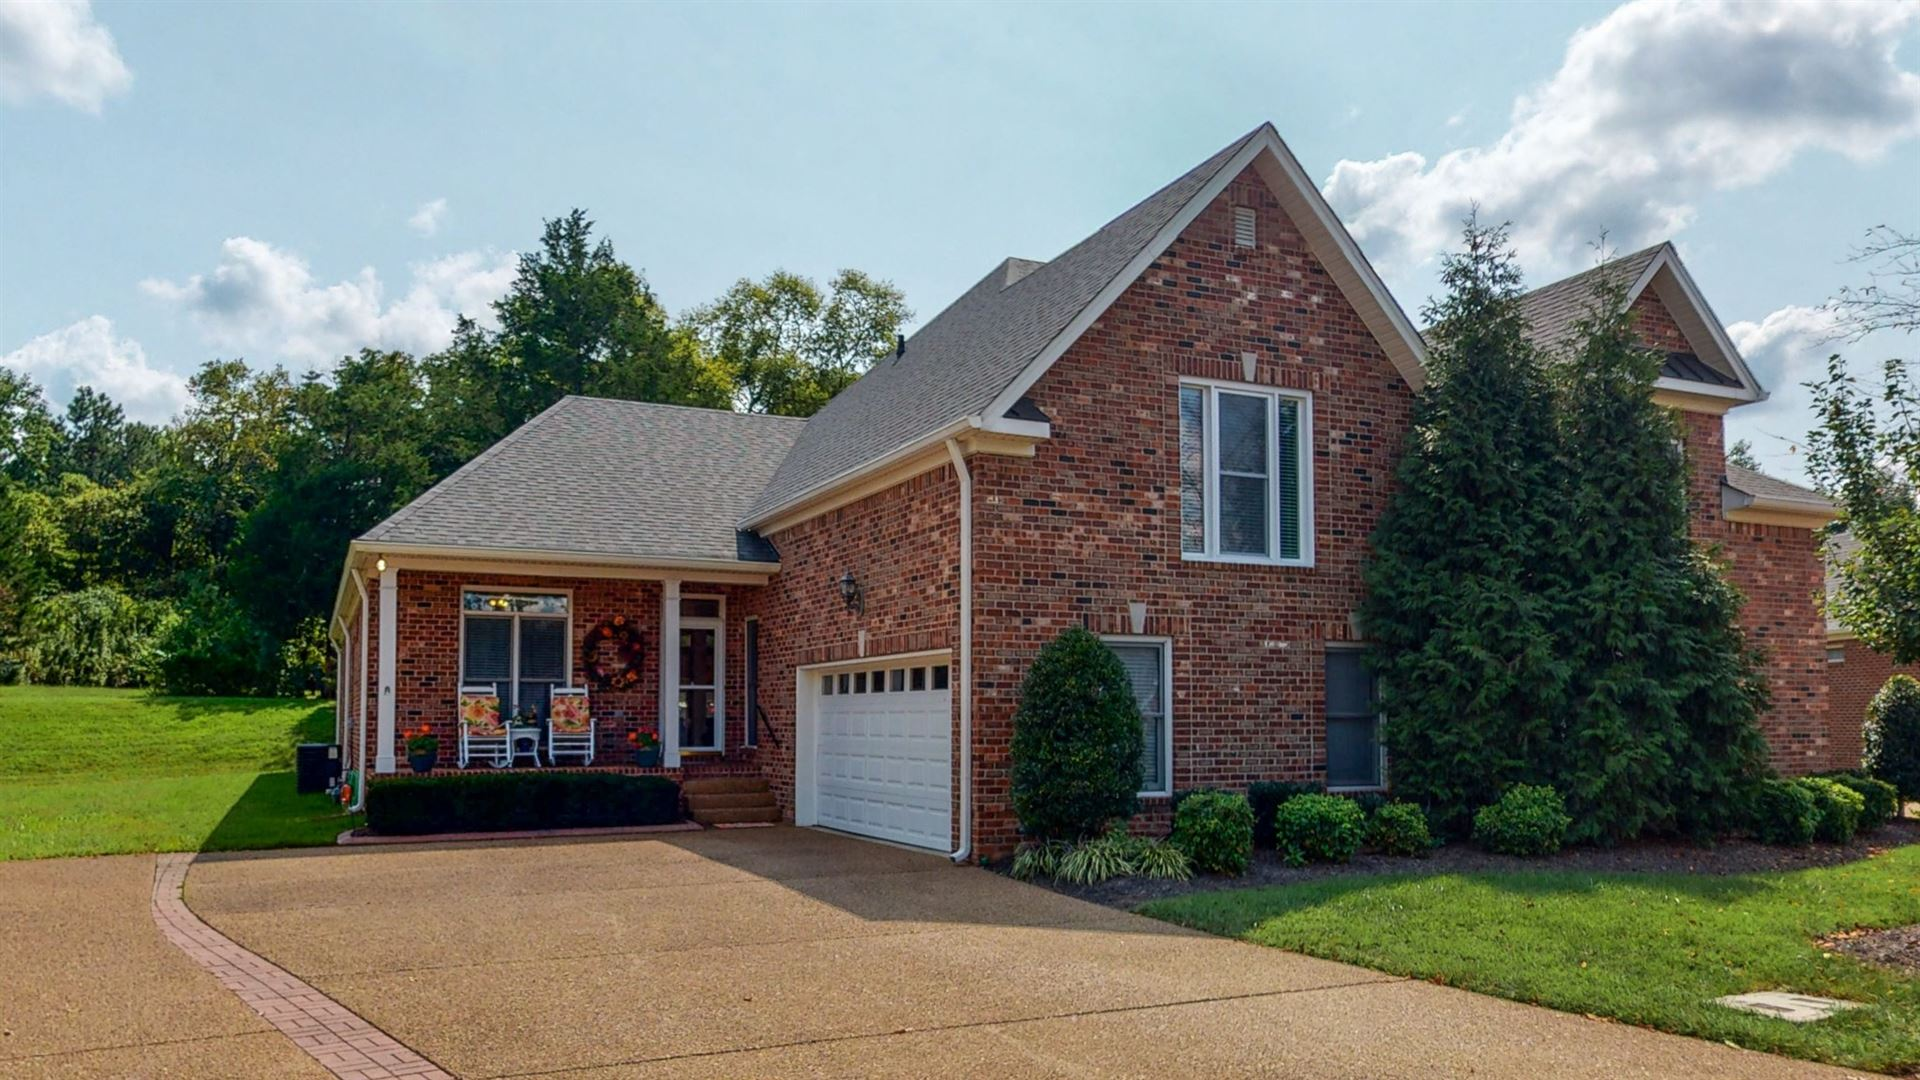 222 Stoners Glen Ct, Hermitage, TN 37076 - MLS#: 2187842